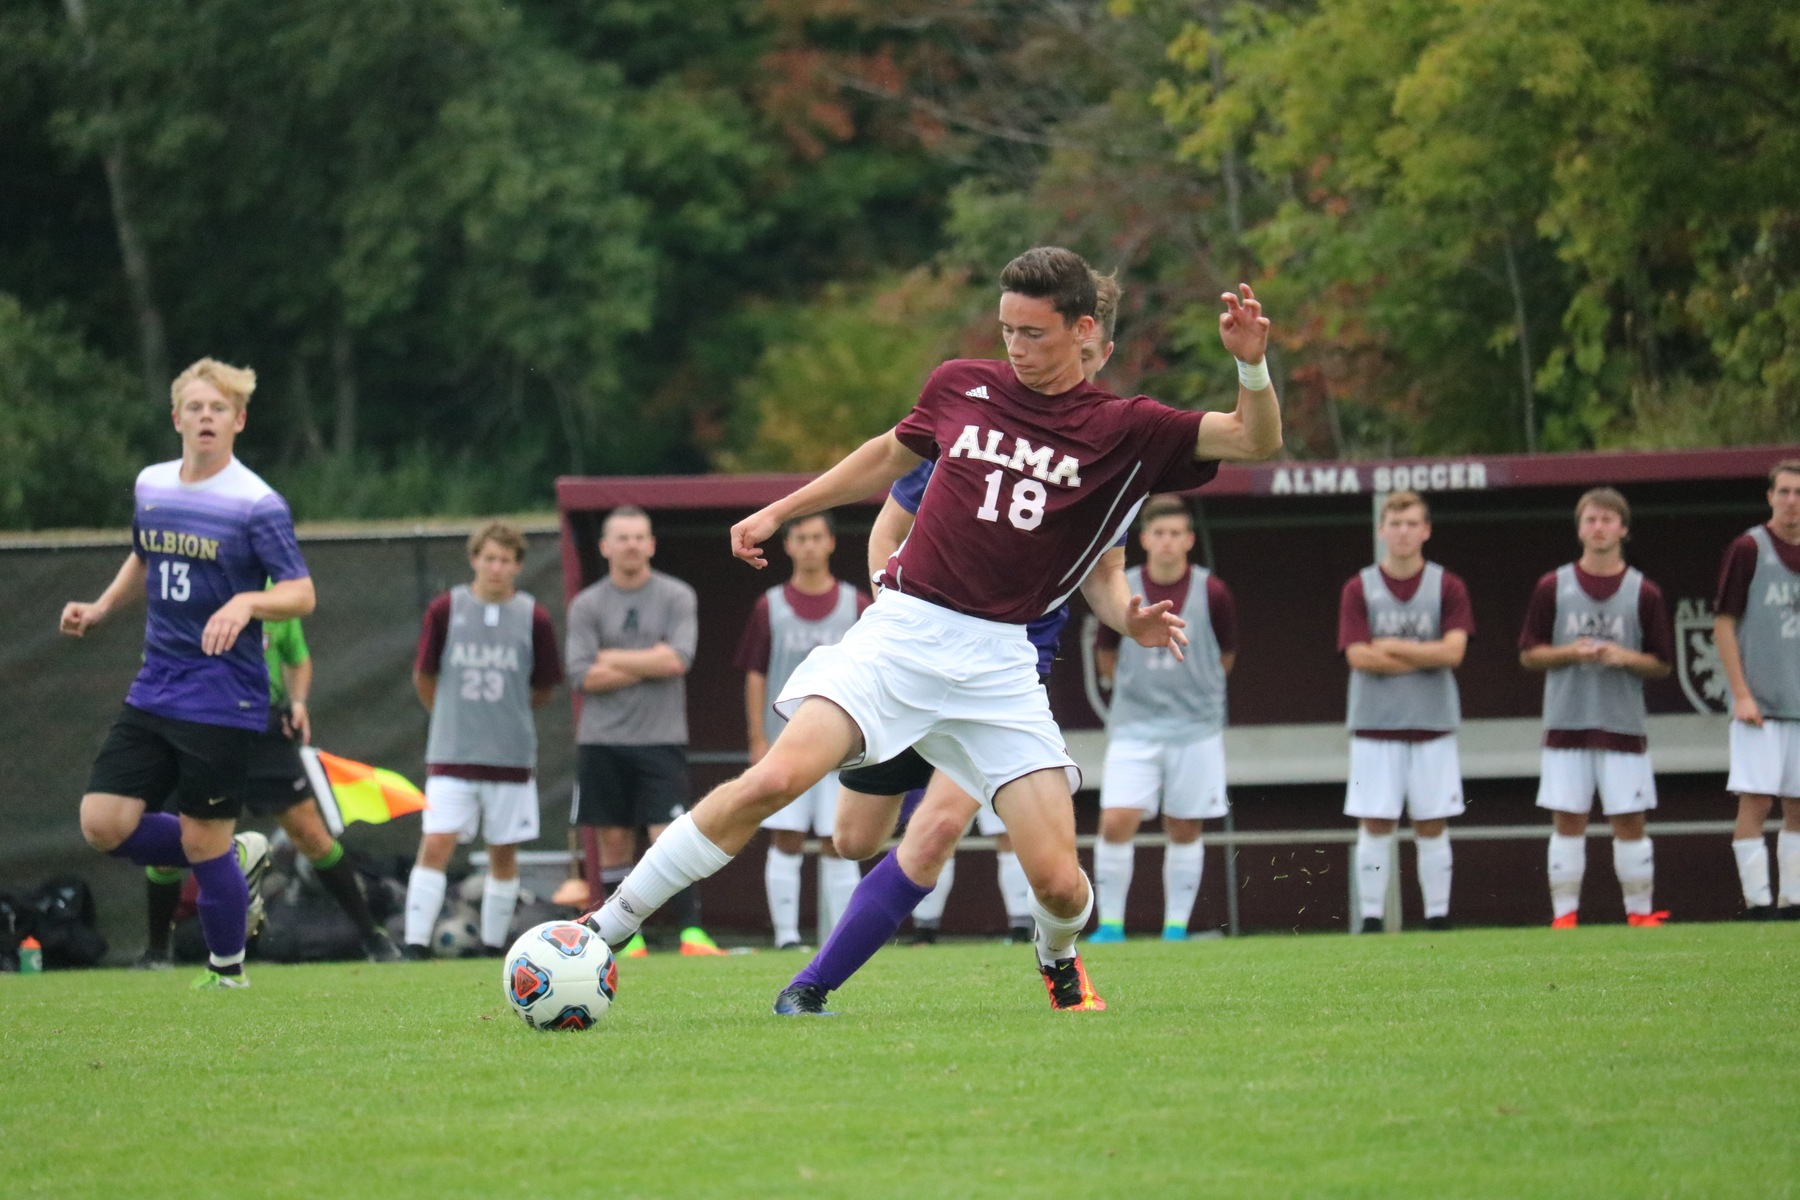 Men's Soccer Bests Albion for First Victory